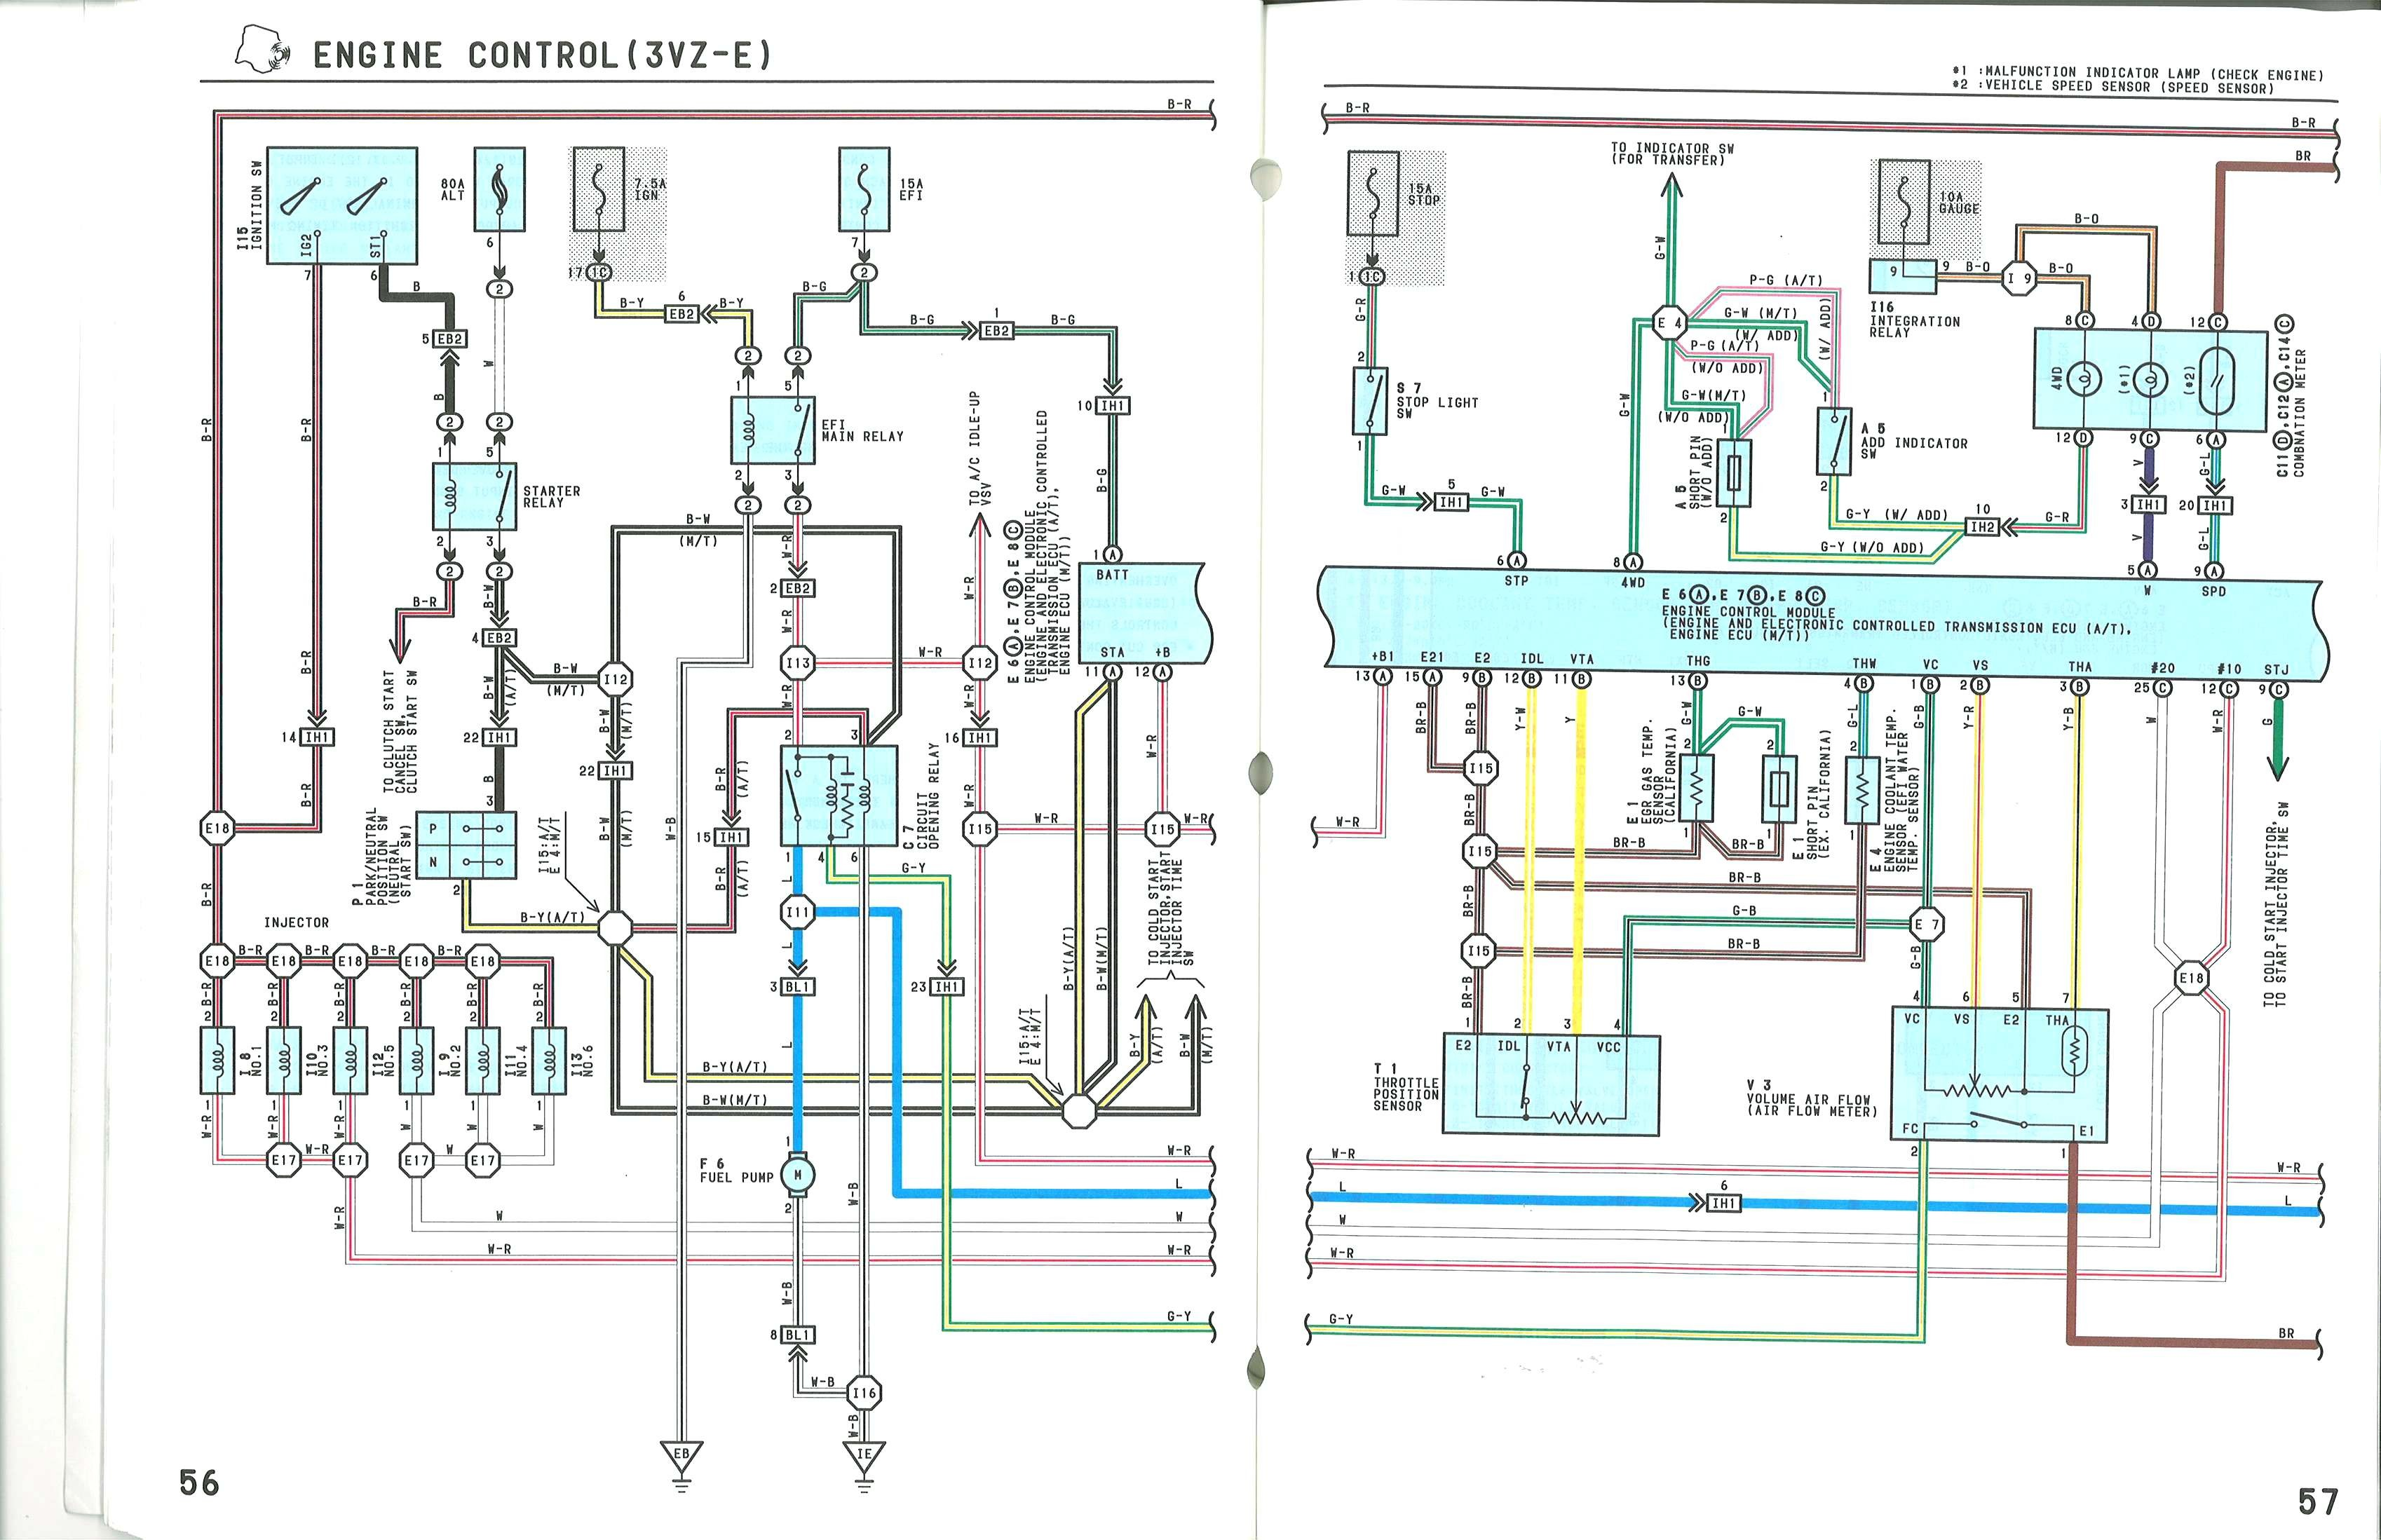 Toyota Pickup Tail Light Wiring Diagram On 89 Toyota Pickup Wiring ...